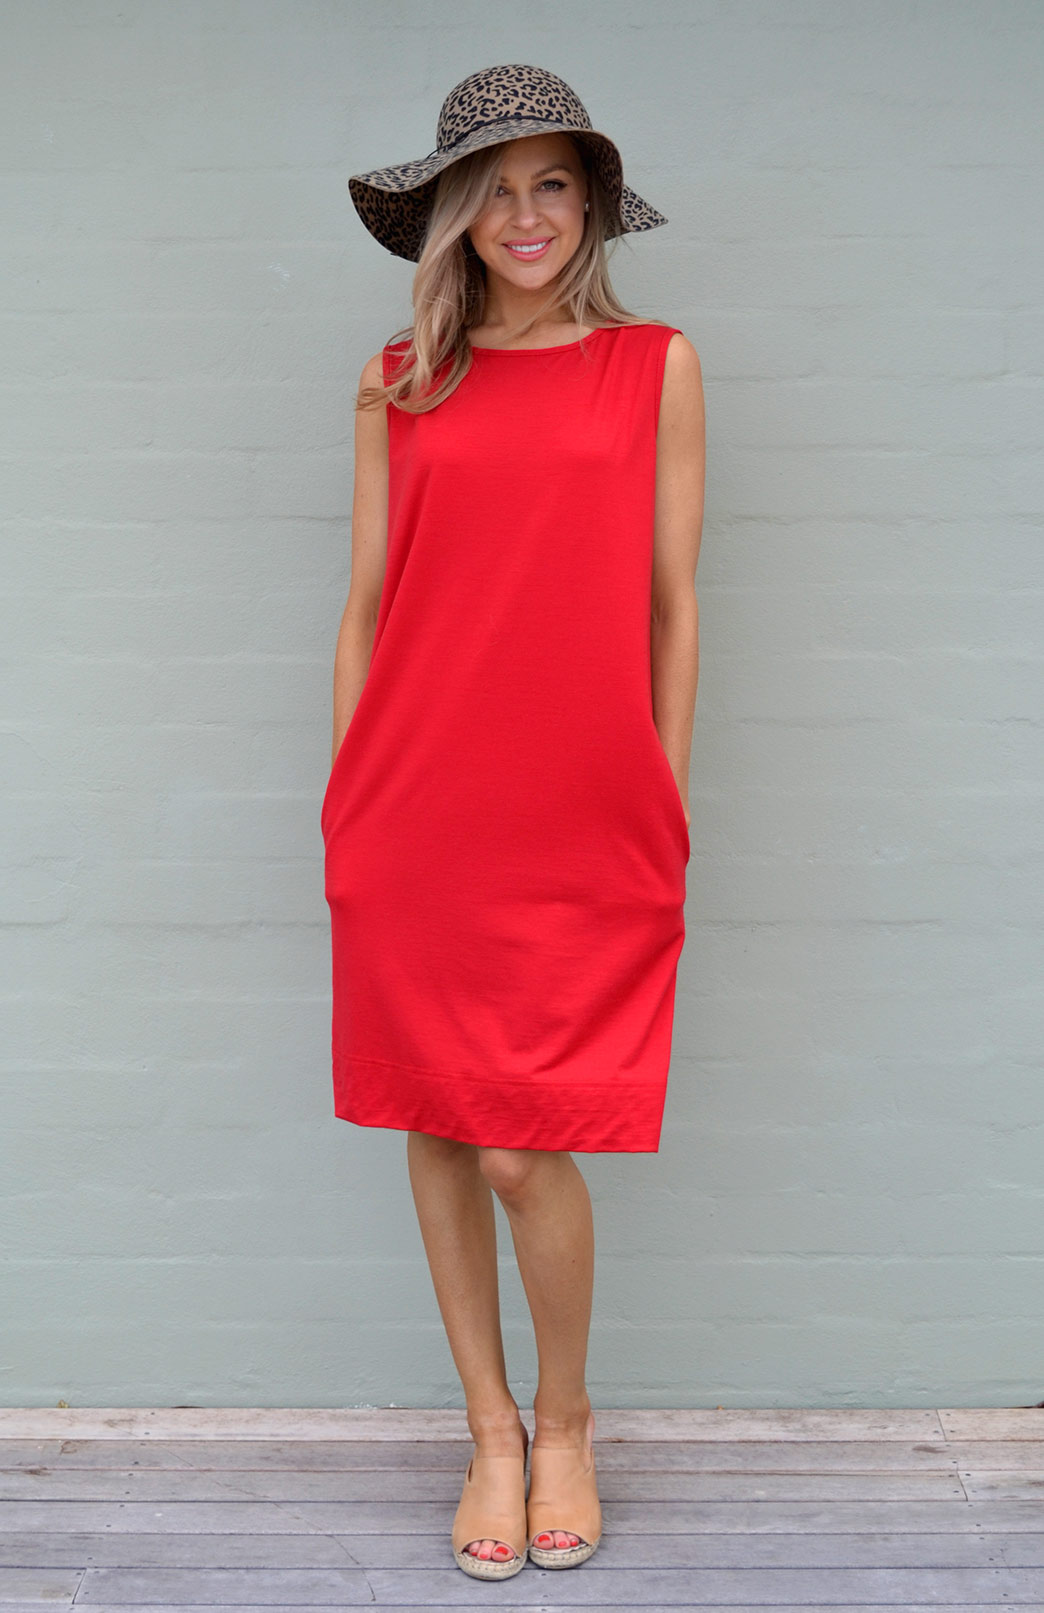 Holly Dress - Women's Flame Red Merino Wool Sleeveless Shift Dress with Pockets - Smitten Merino Tasmania Australia